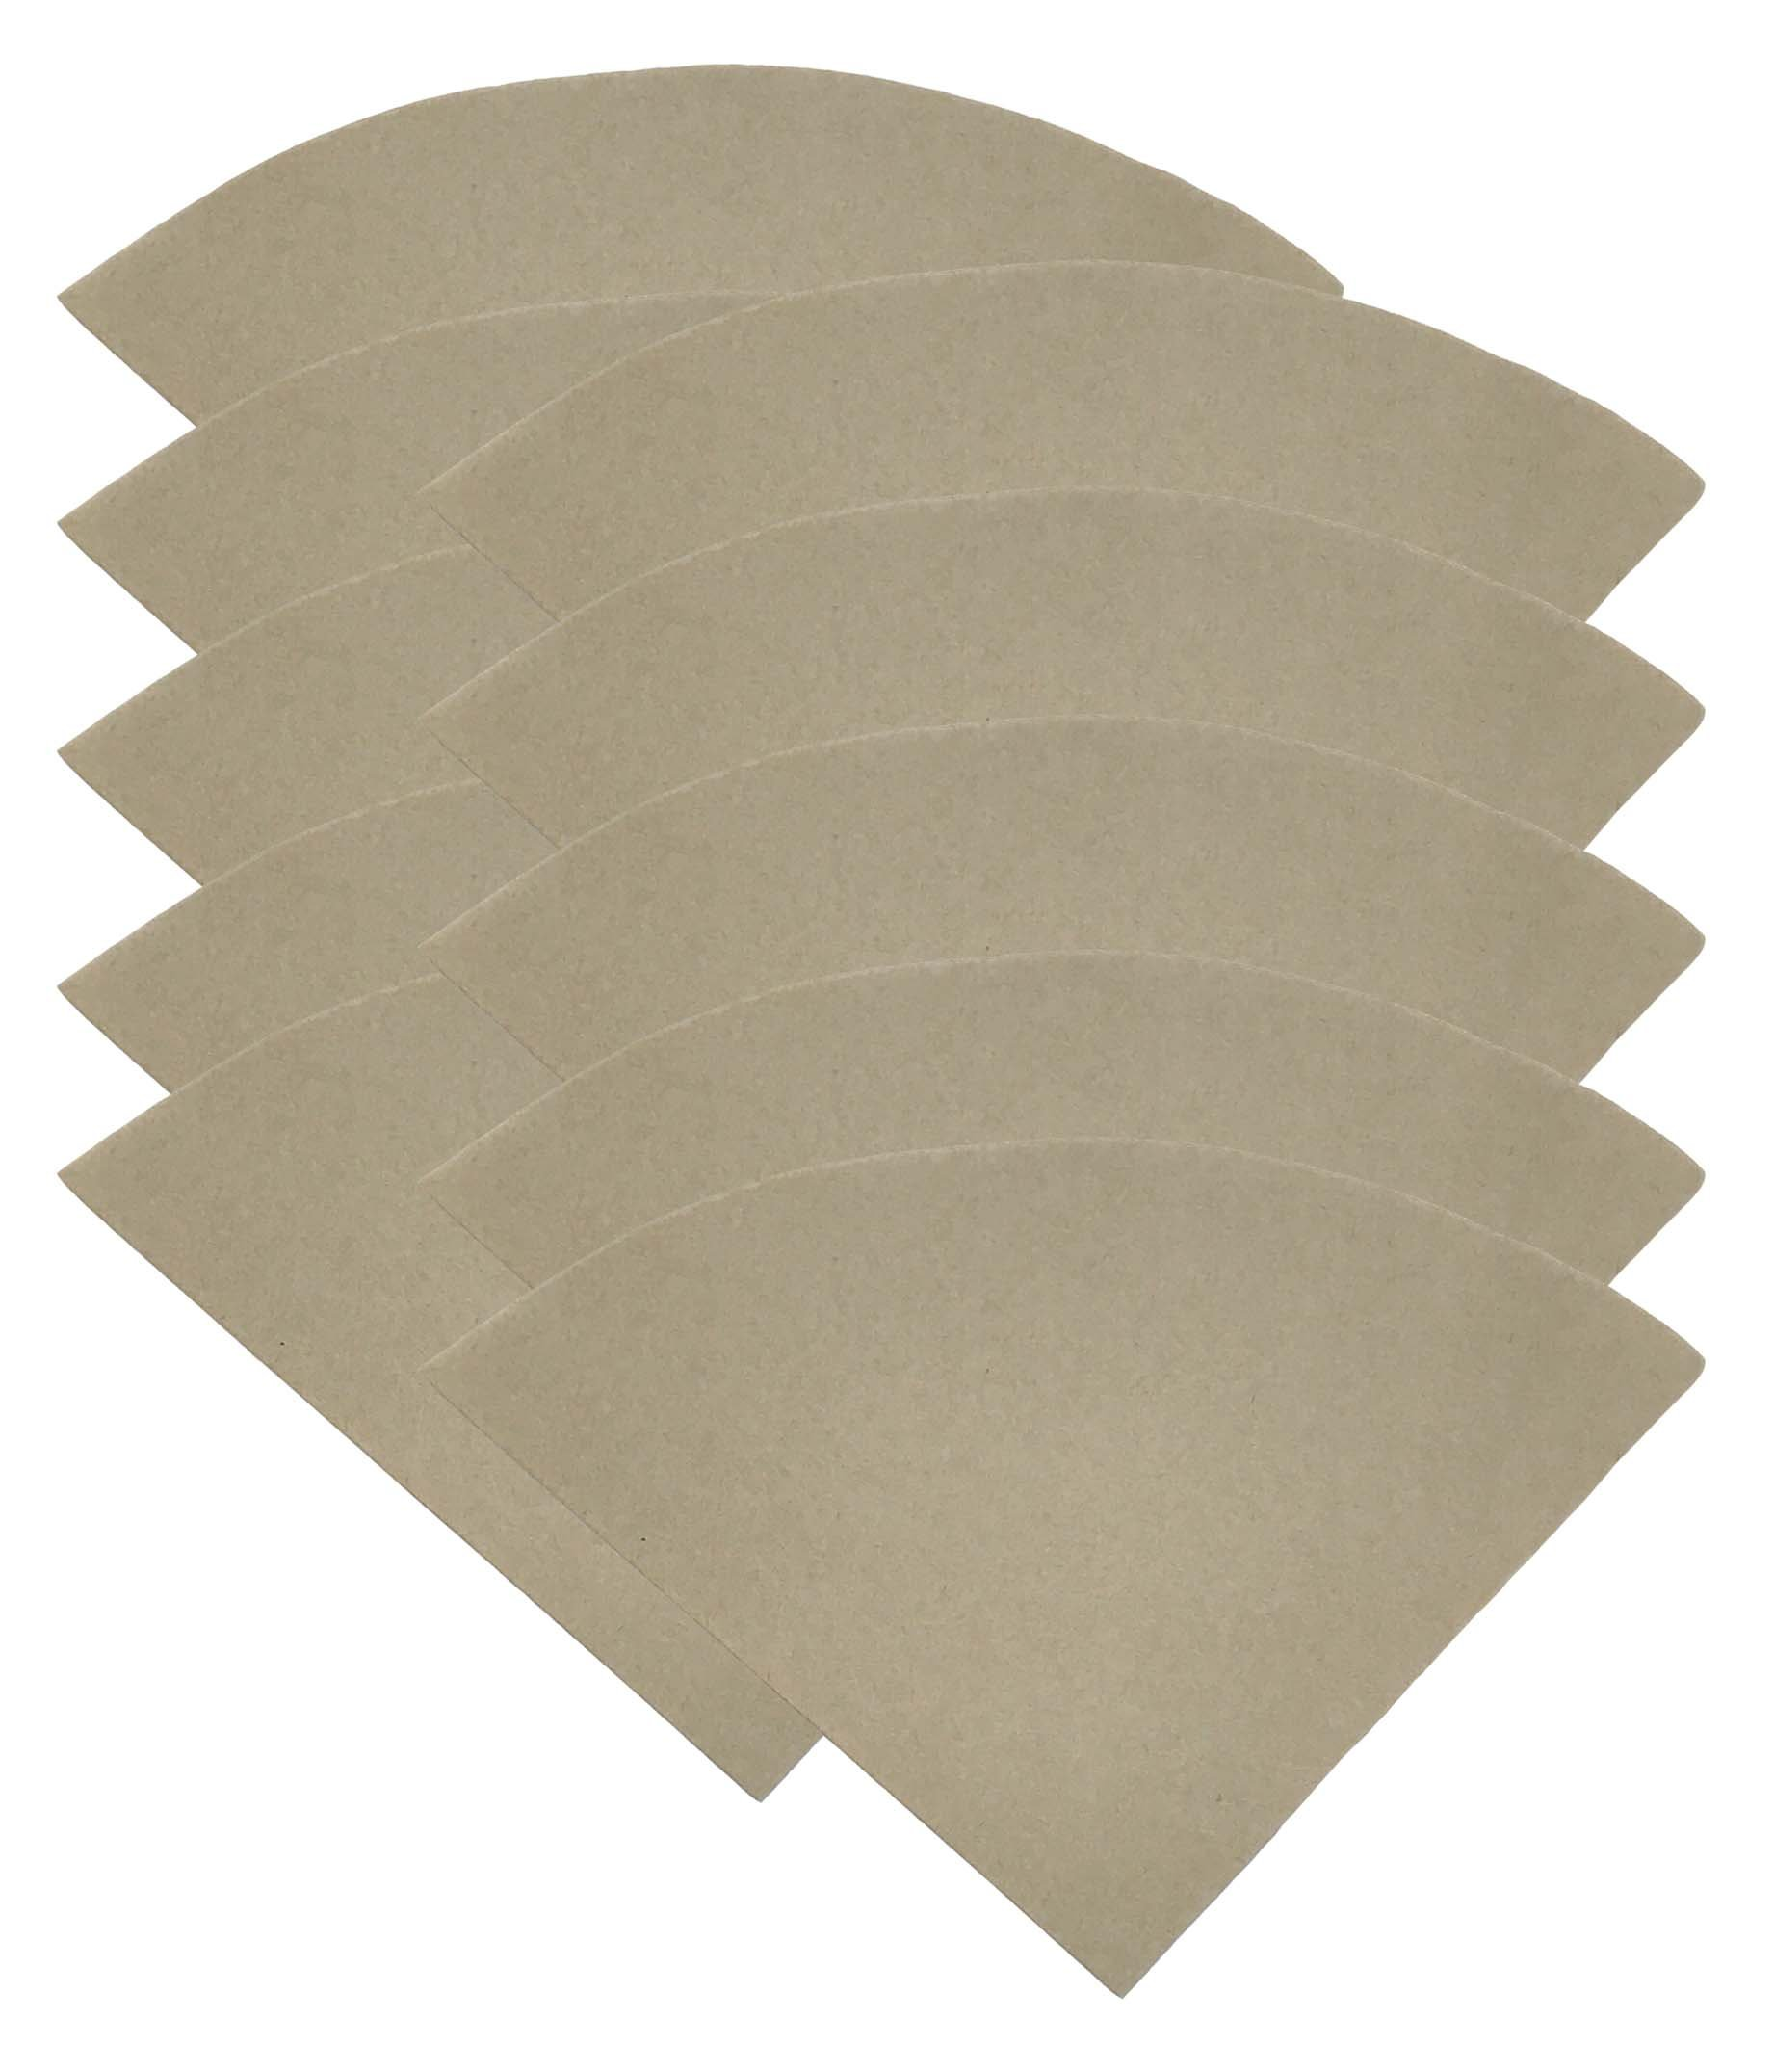 1000PK Compatible Replacement Unbleached Paper Coffee Filters For 6, 8 & 10 Cup Chemex-Brand Coffee Makers, by Think Crucial